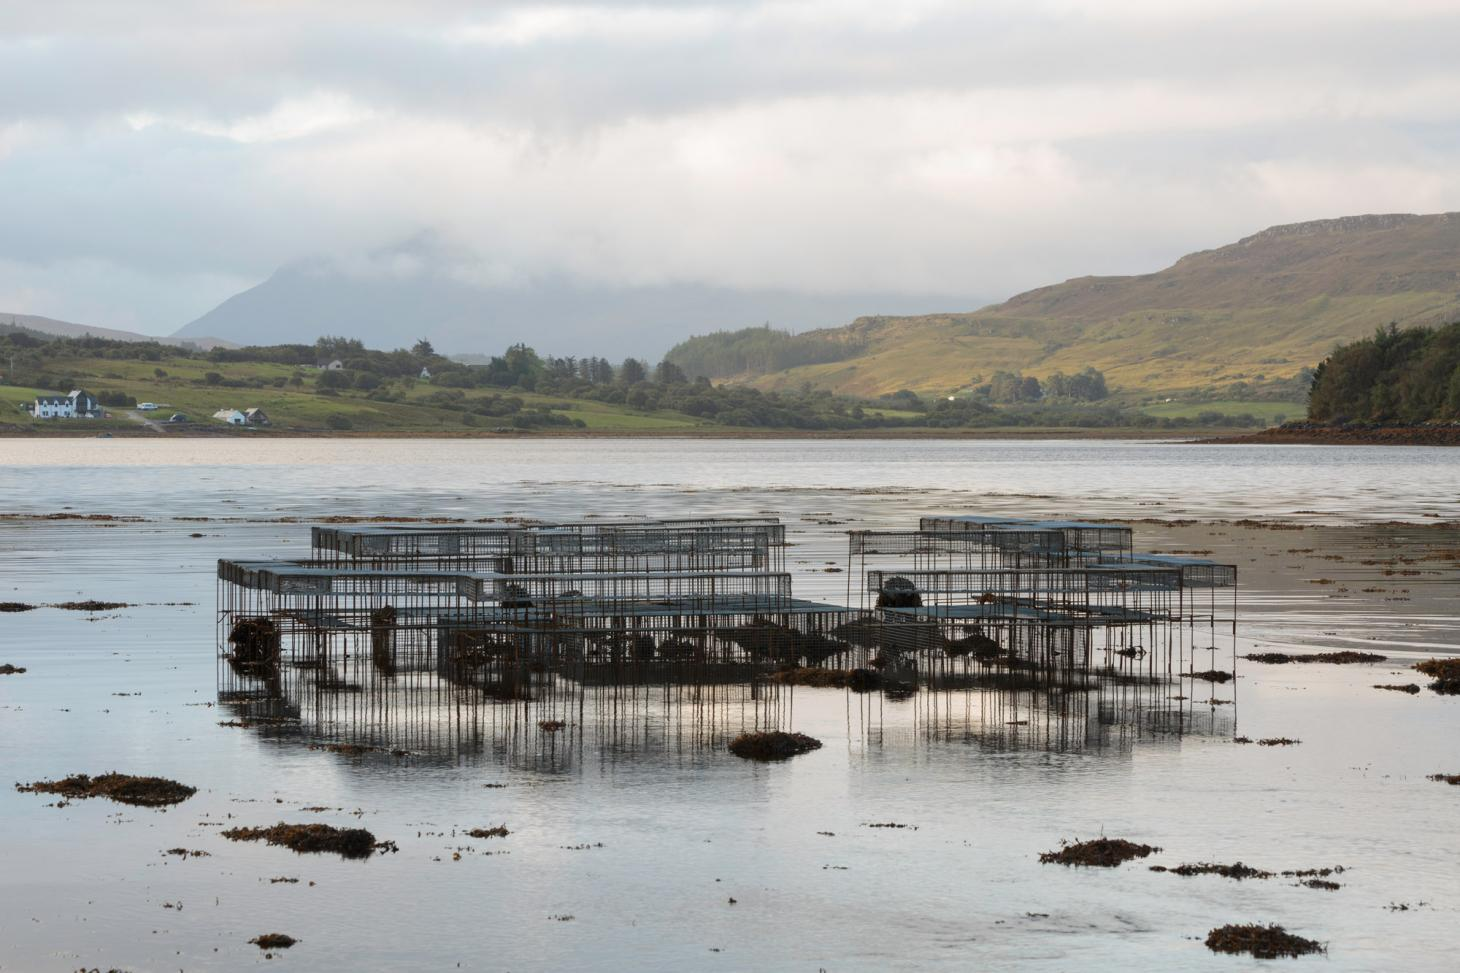 On Tidal Zones' highlights the effects of intensive salmon aquaculture on the Isle of Skye with an installation that works as an underwater oyster table at high tide and a dining table for humans at low tide by Cooking Sections